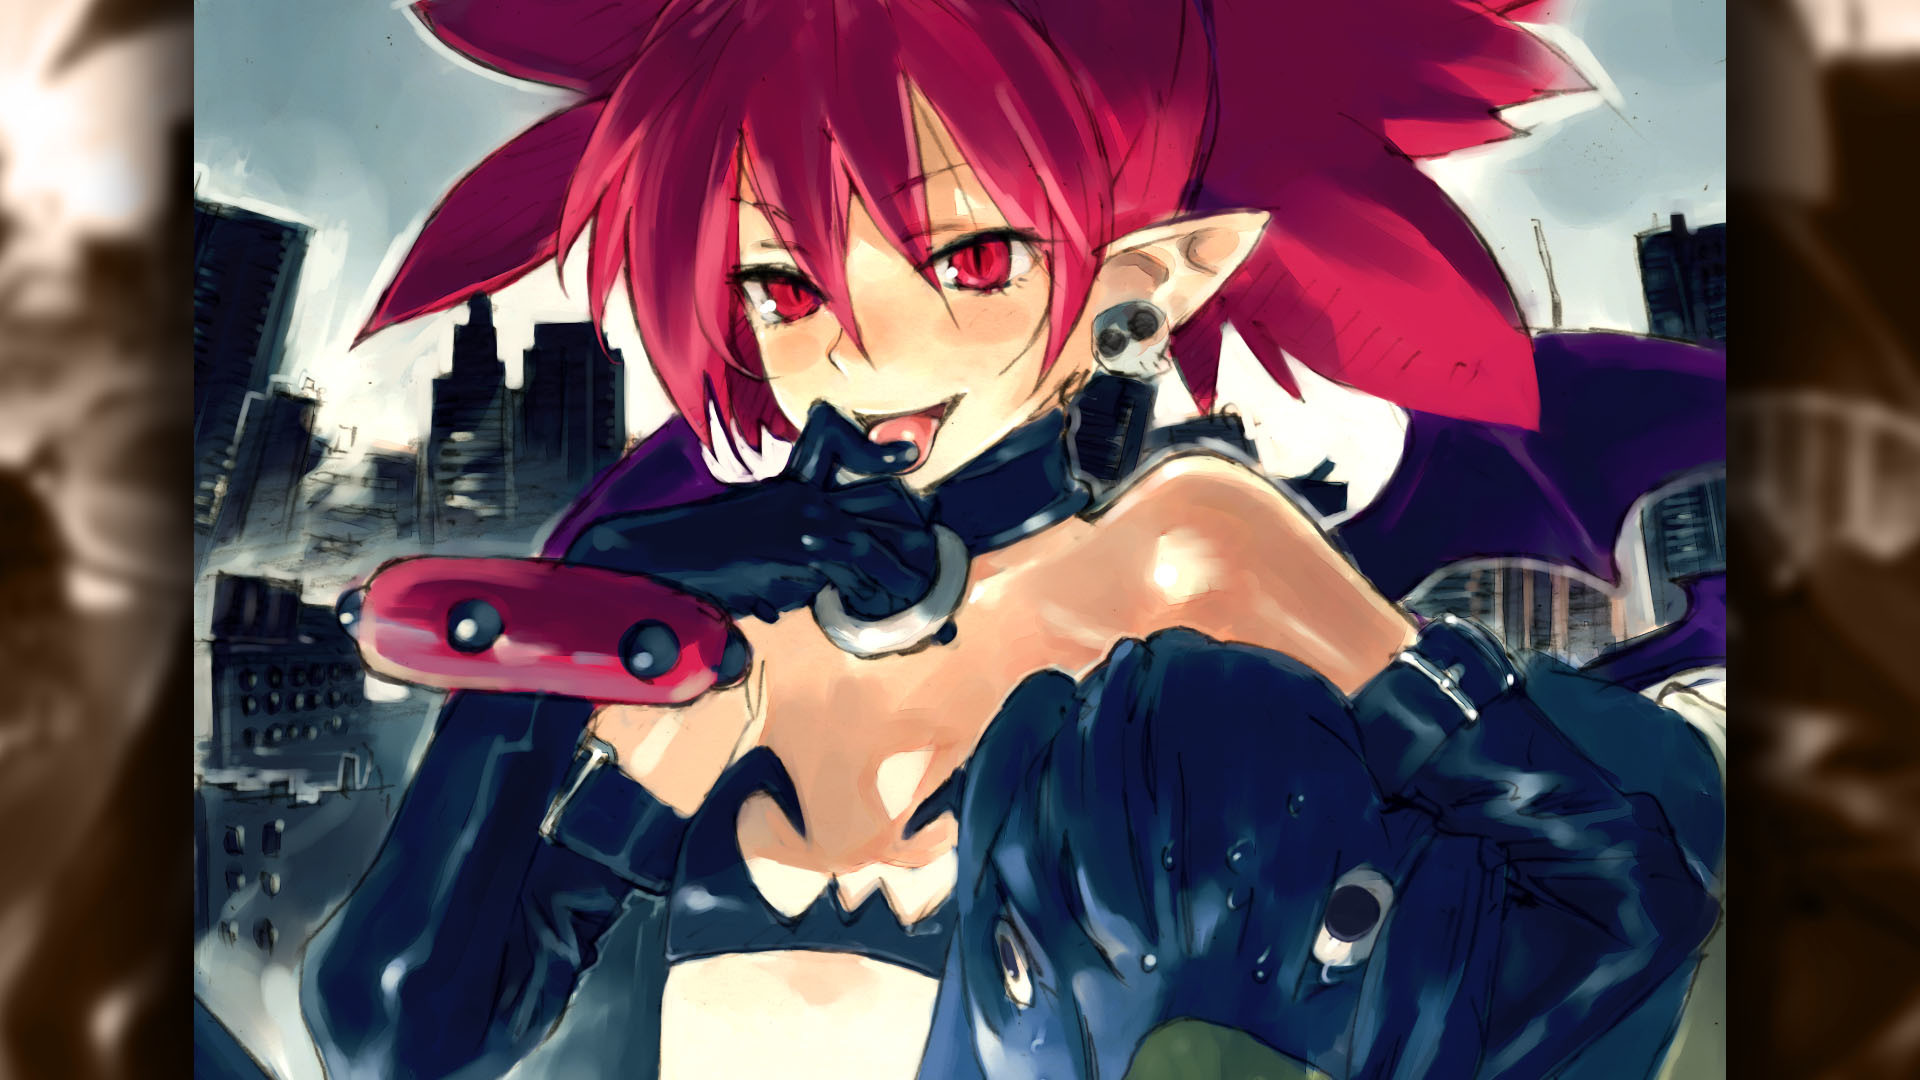 1920x1080 Disgaea 2 PC Wallpaper 009 – Etna